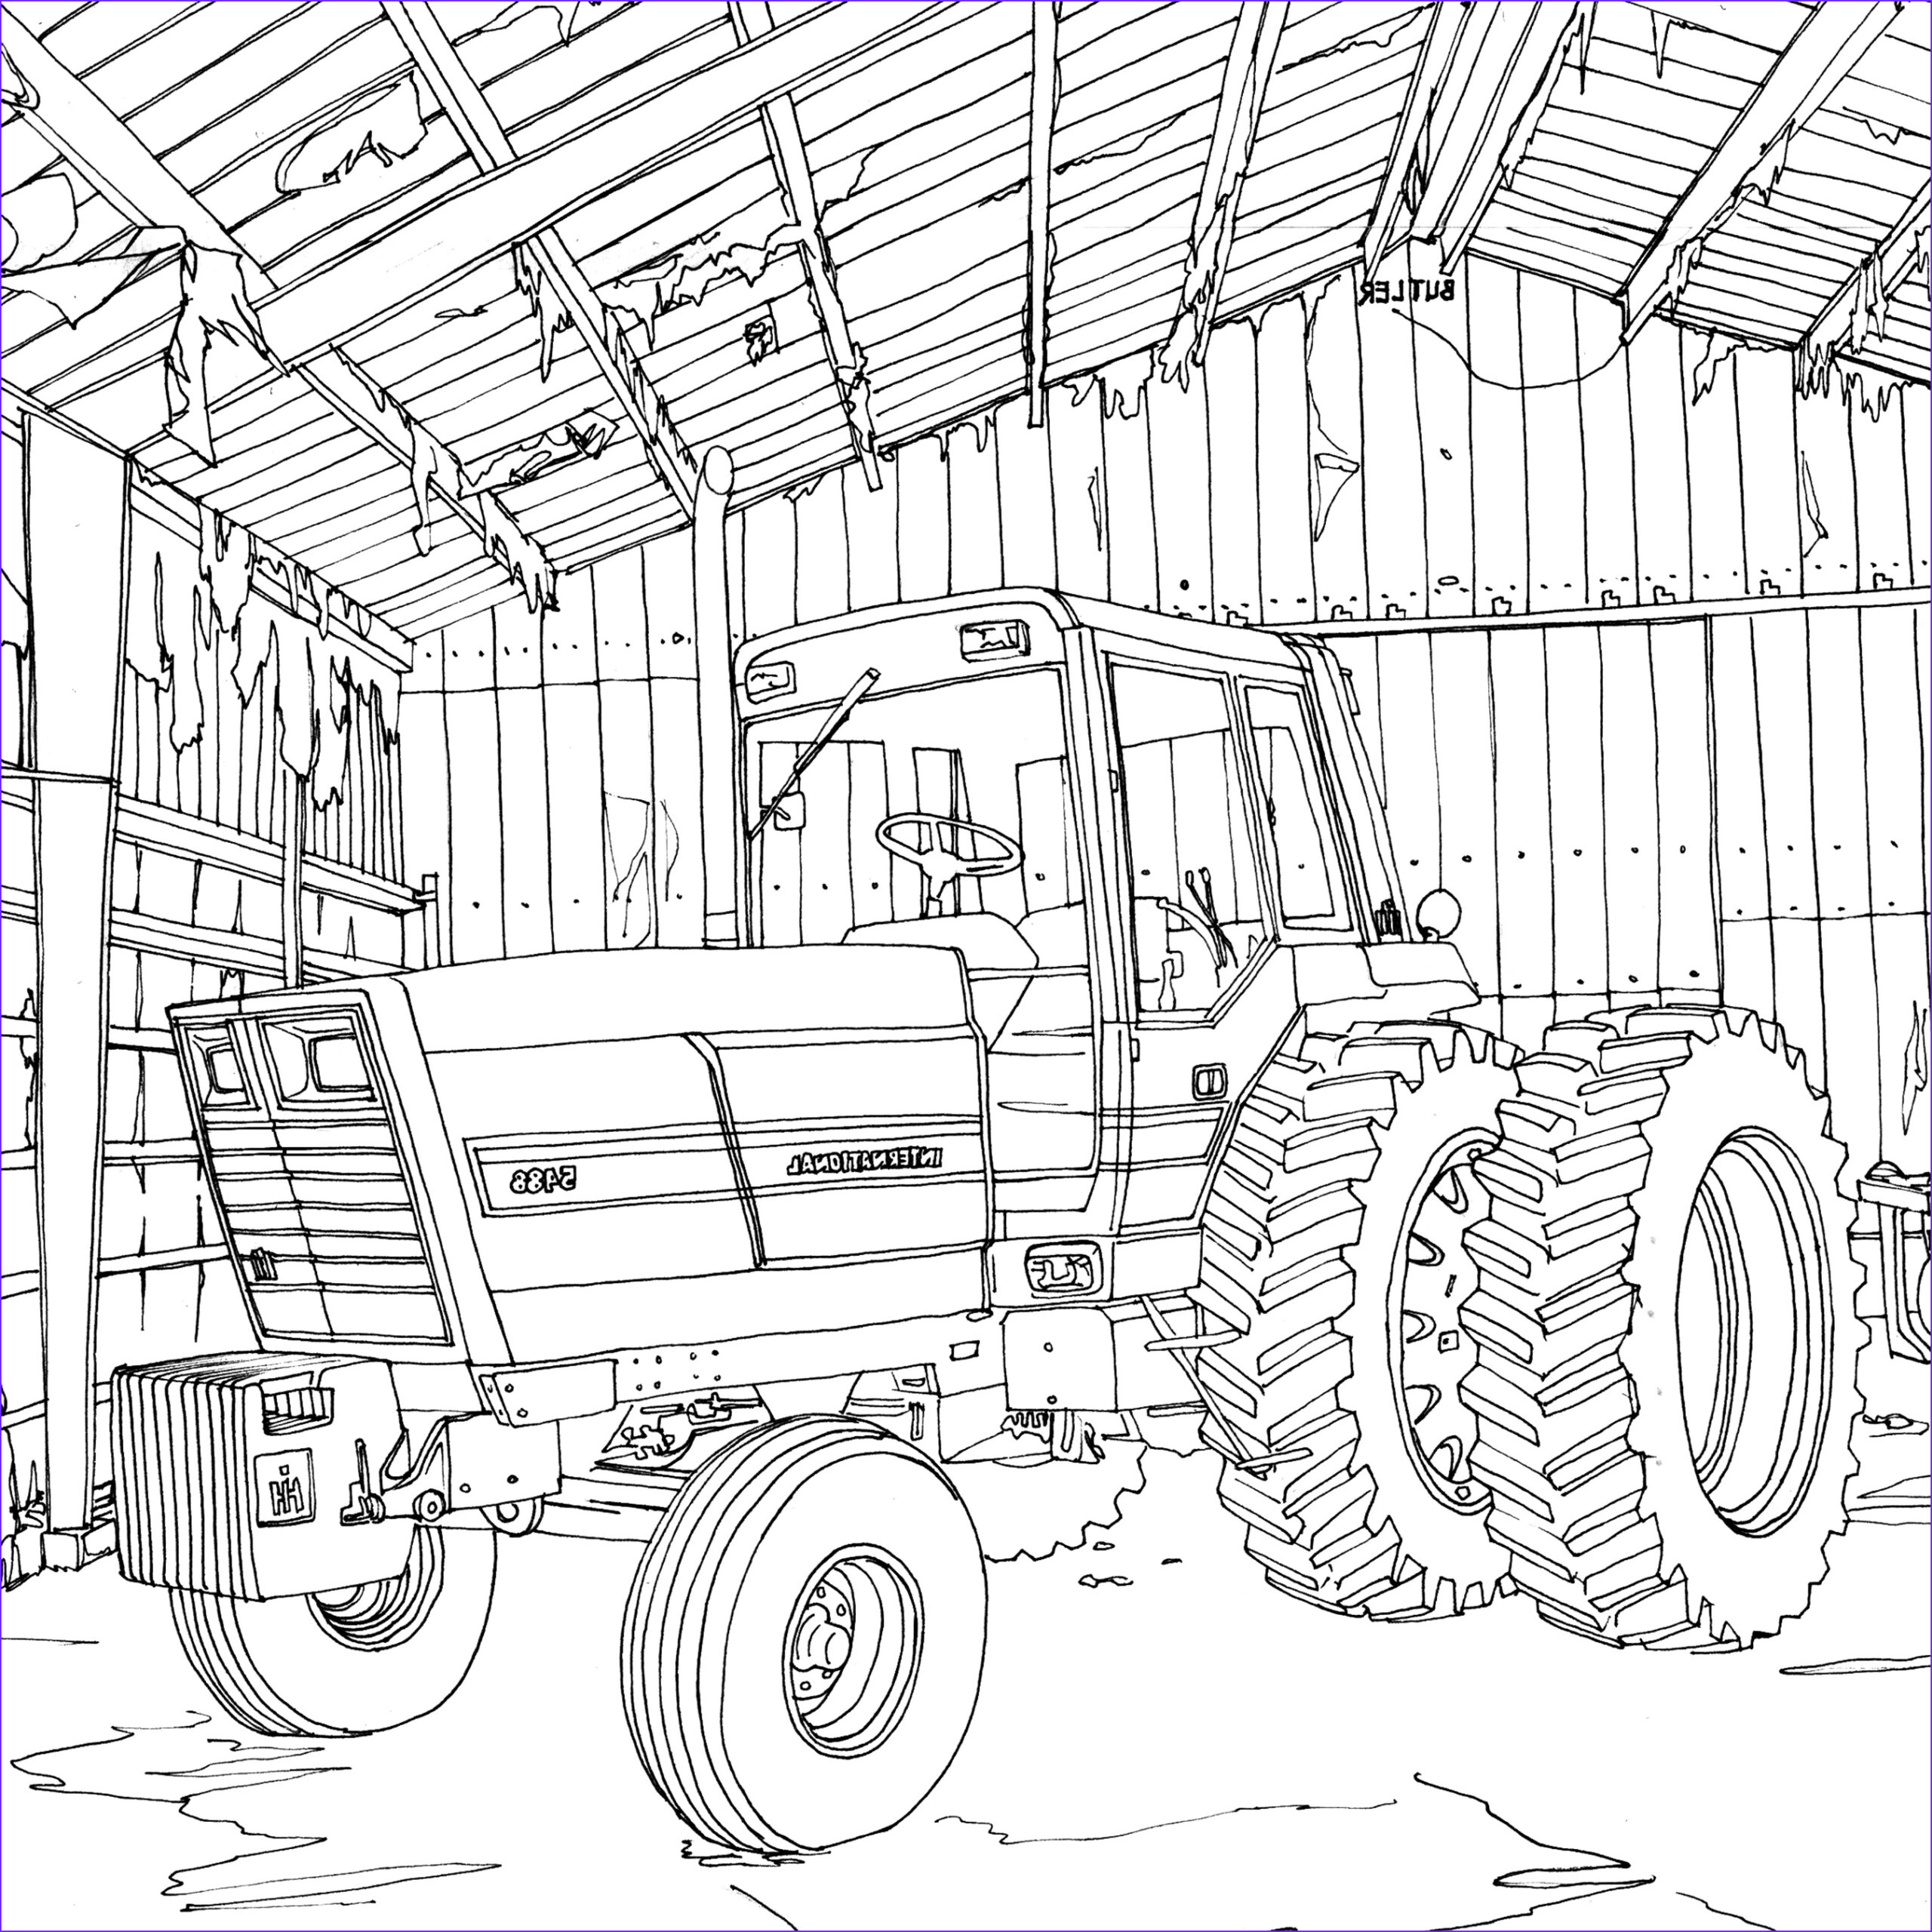 Coloring Farms Luxury Image Art Of the Tractor Coloring Book